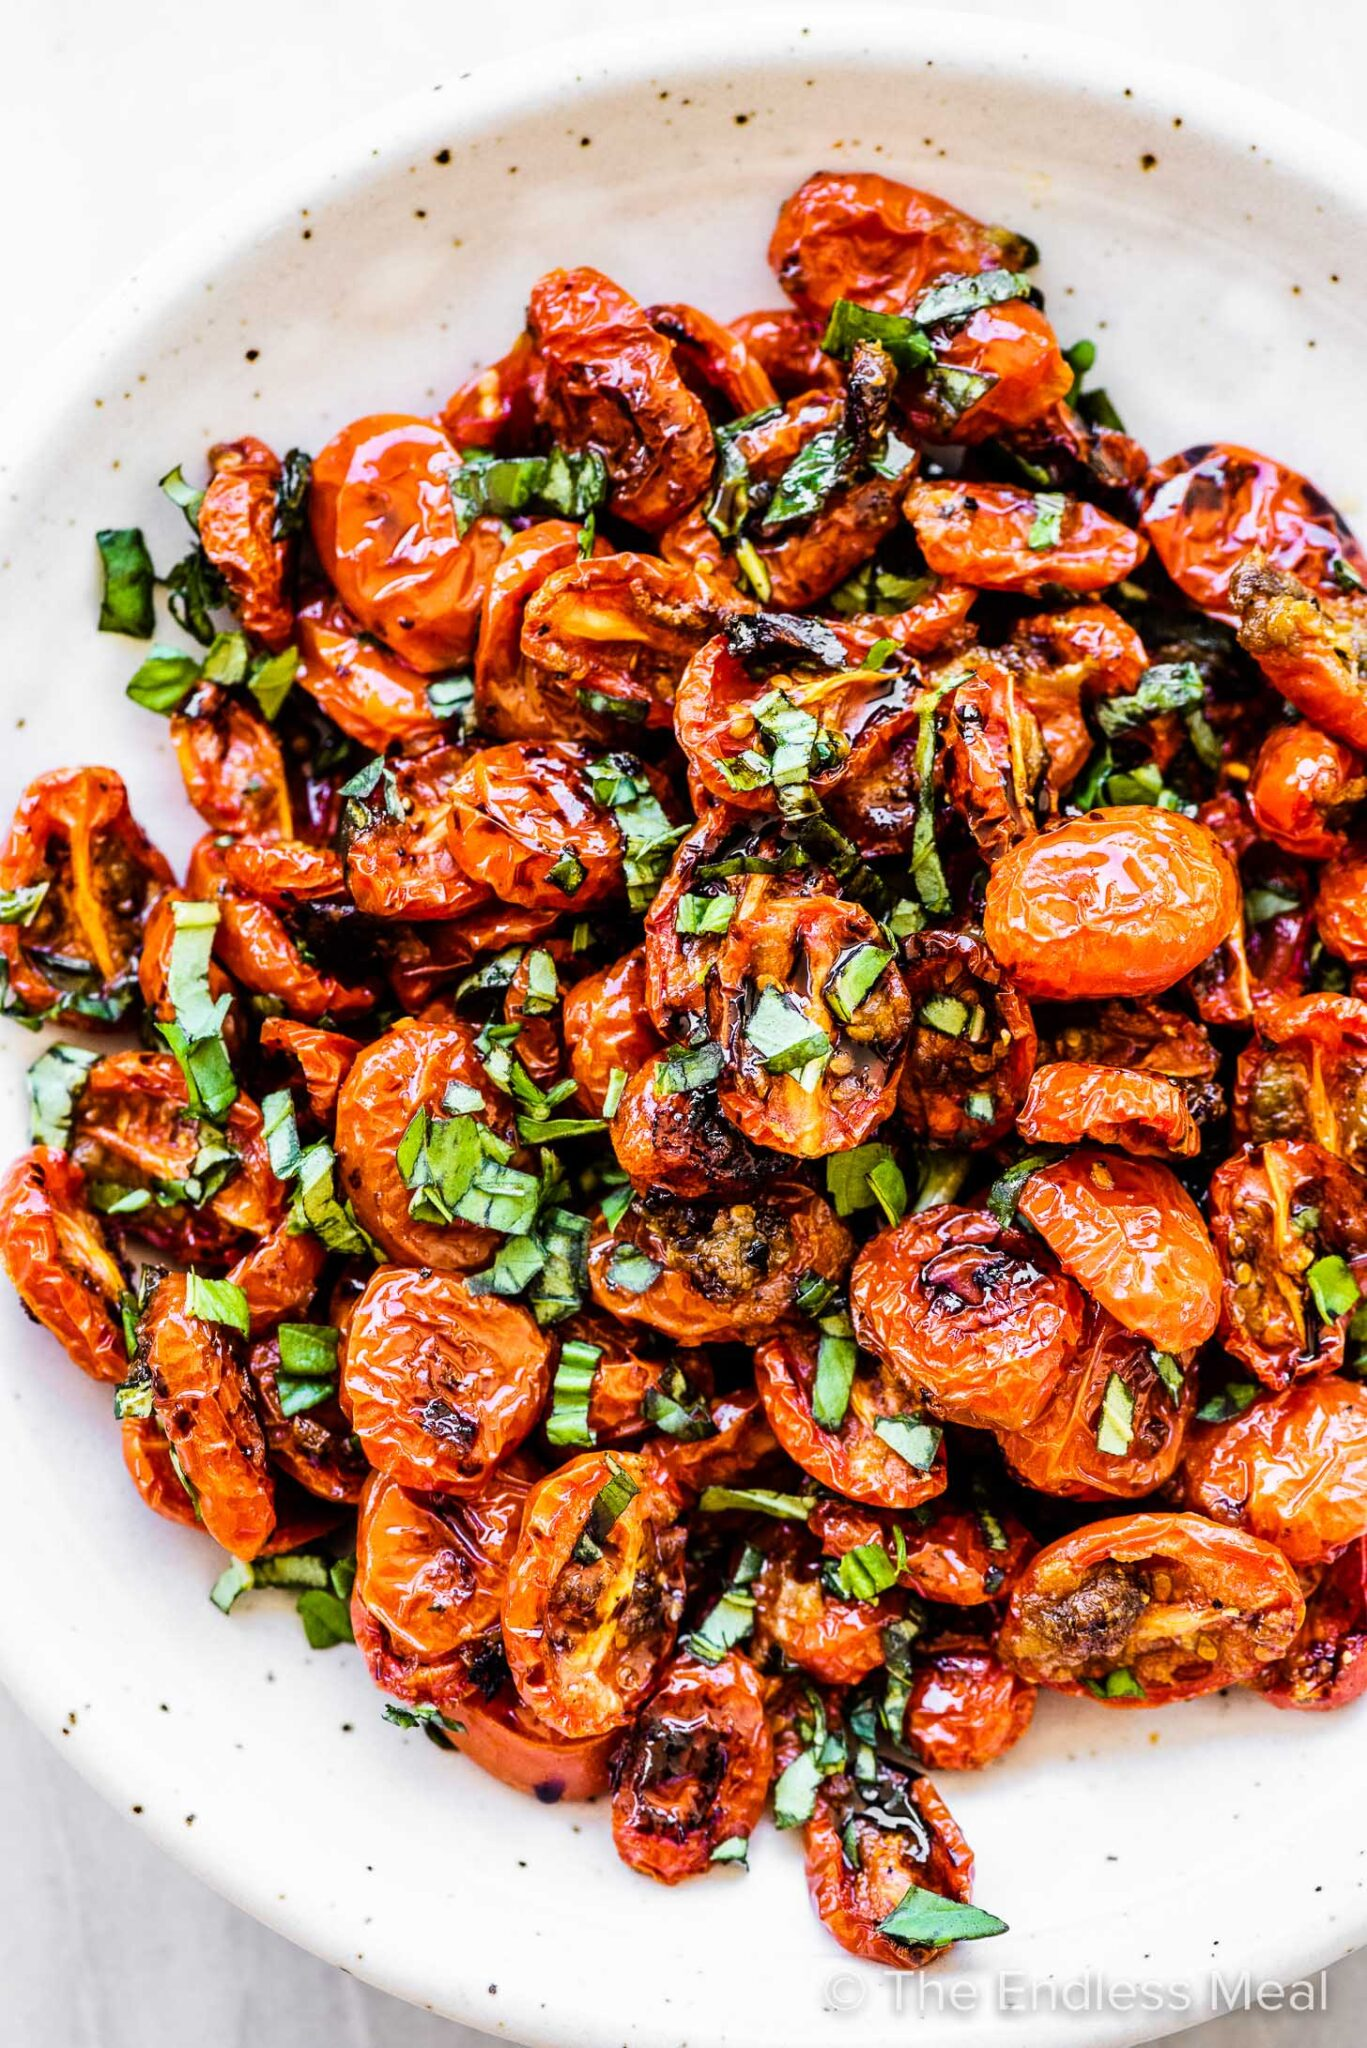 Roasted Cherry Tomatoes piled high in a white bowl.